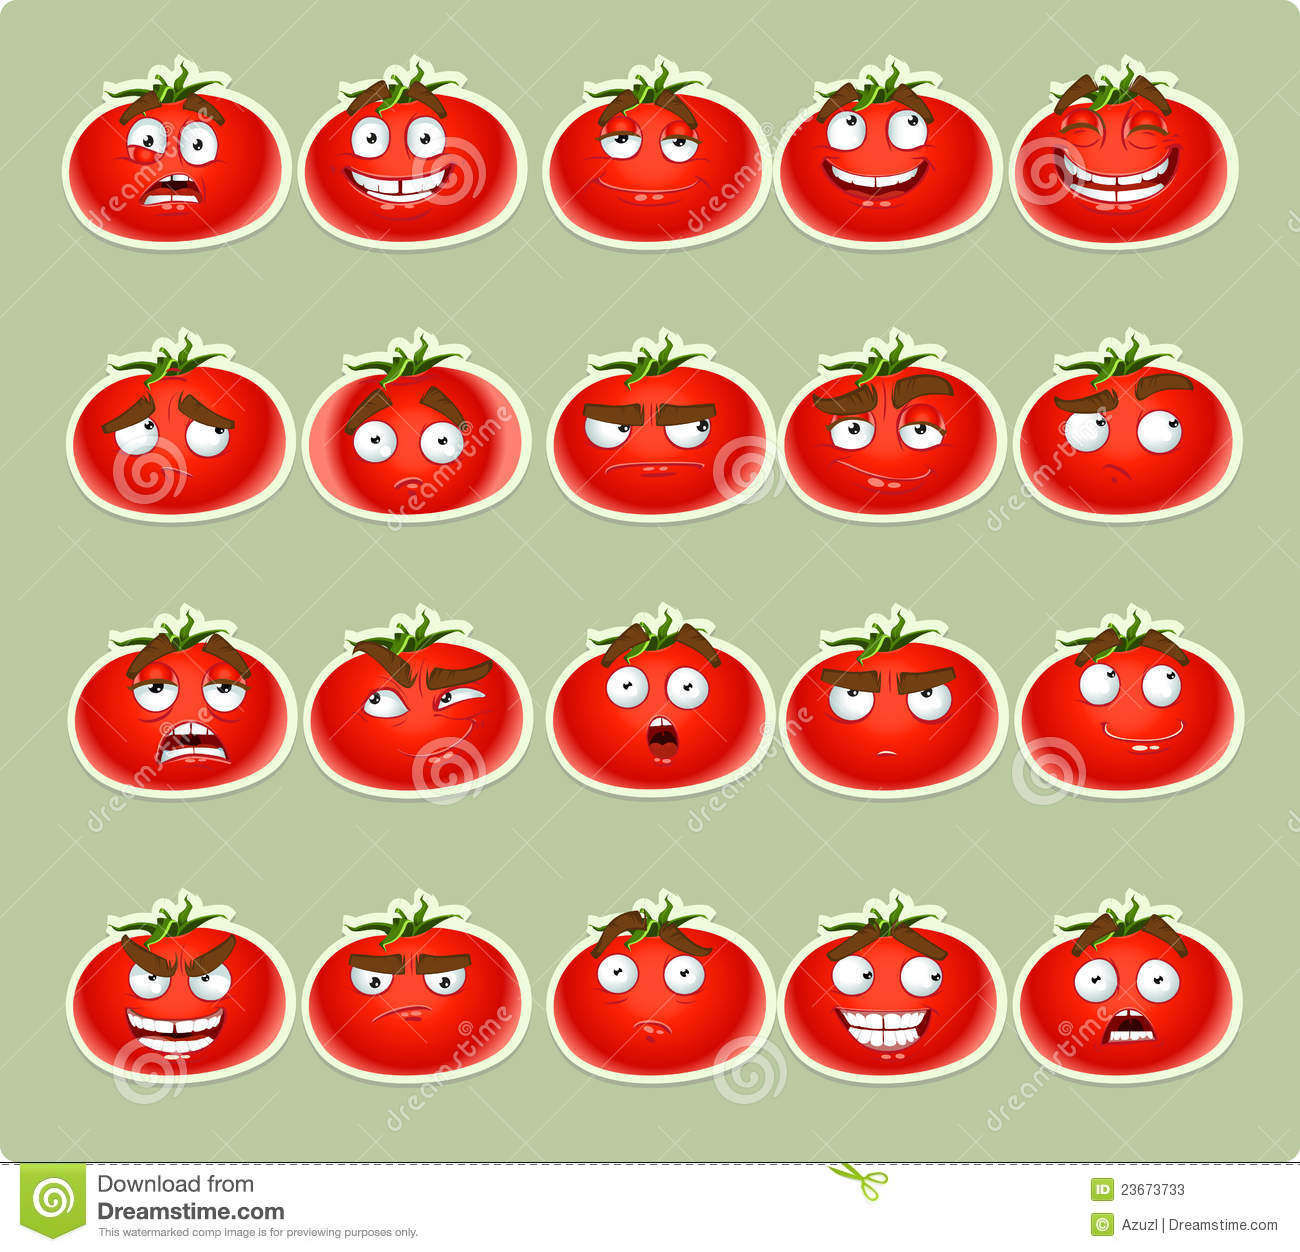 Cute Cartoon Tomato Smile With Many Expressions Ic Stock ...